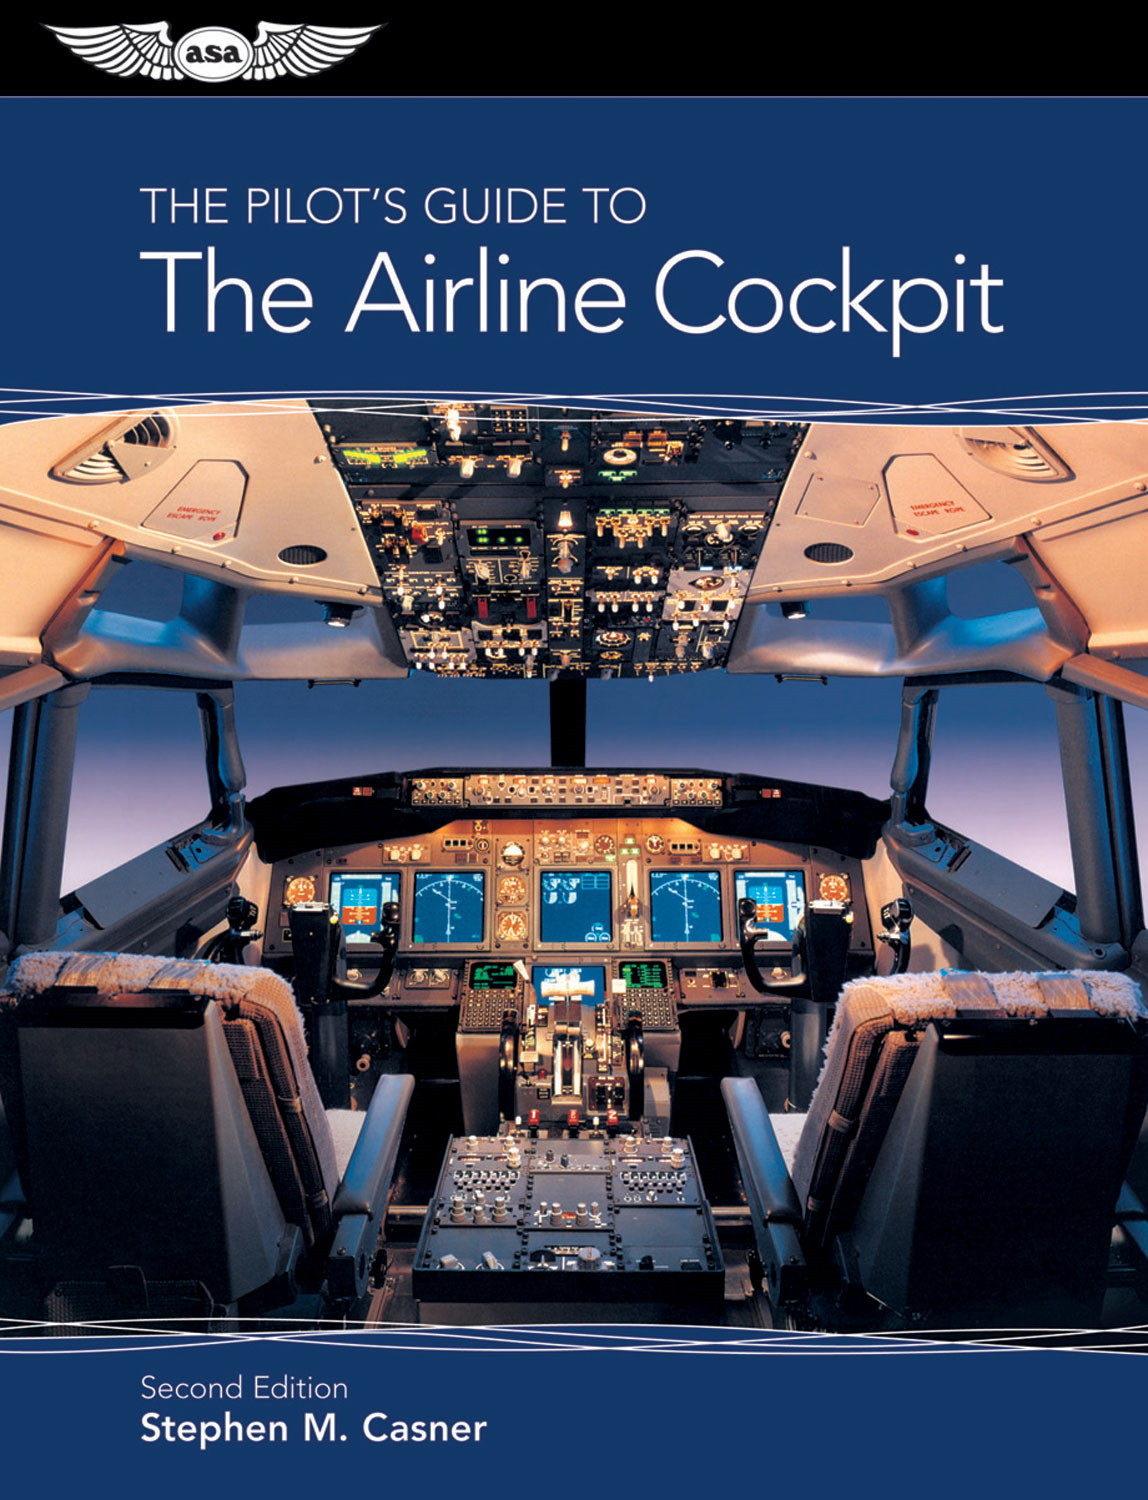 A Pilot's Guide to The Airline Cockpit